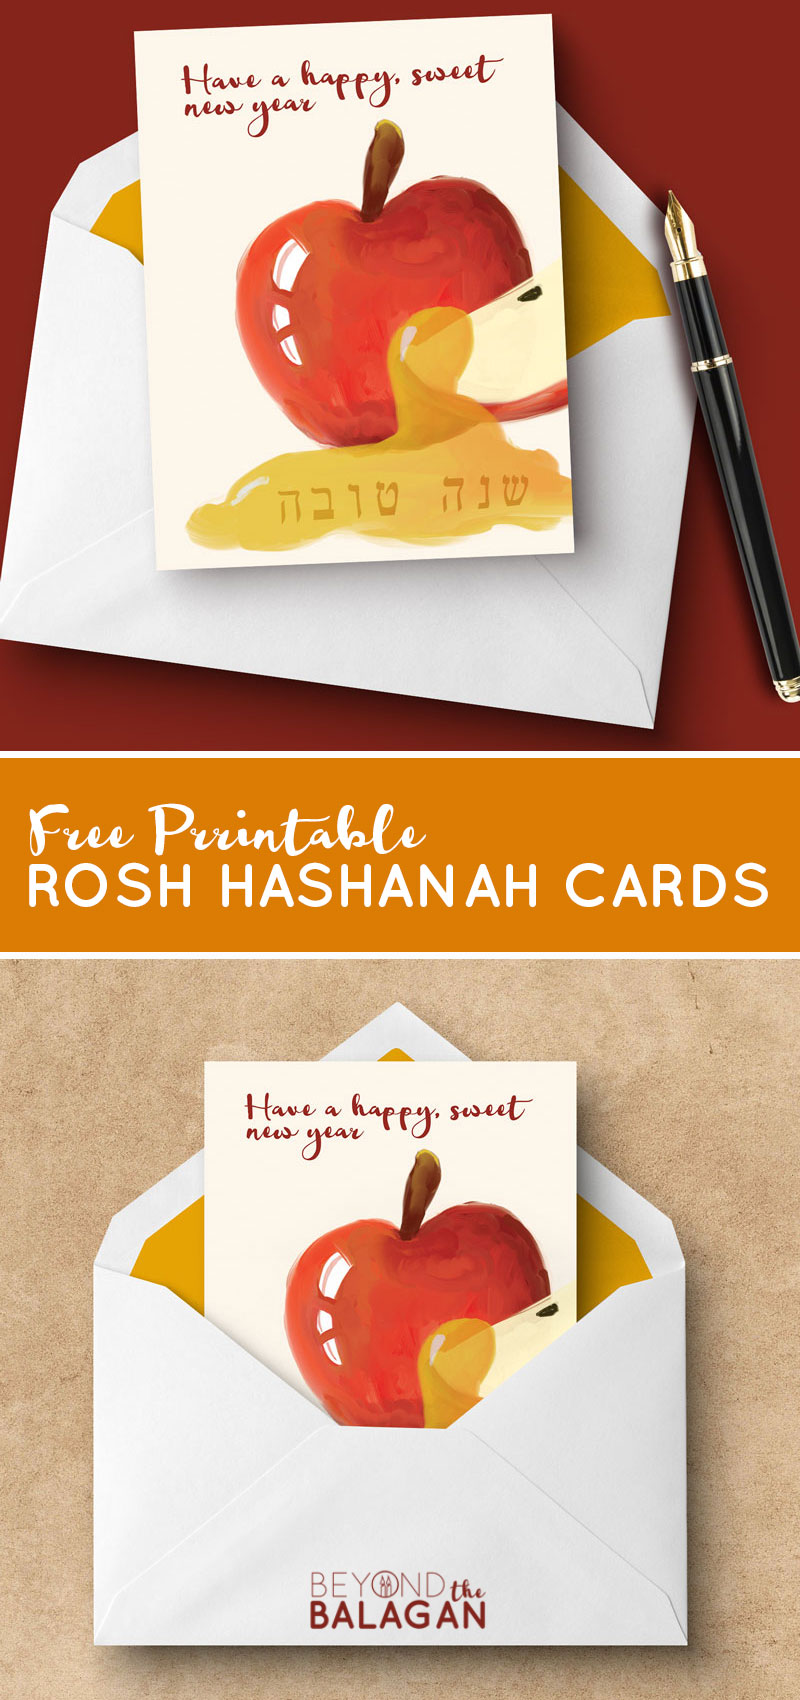 download these free printable rosh hashanah cards these fun free printable rosh hashanah greeting cards